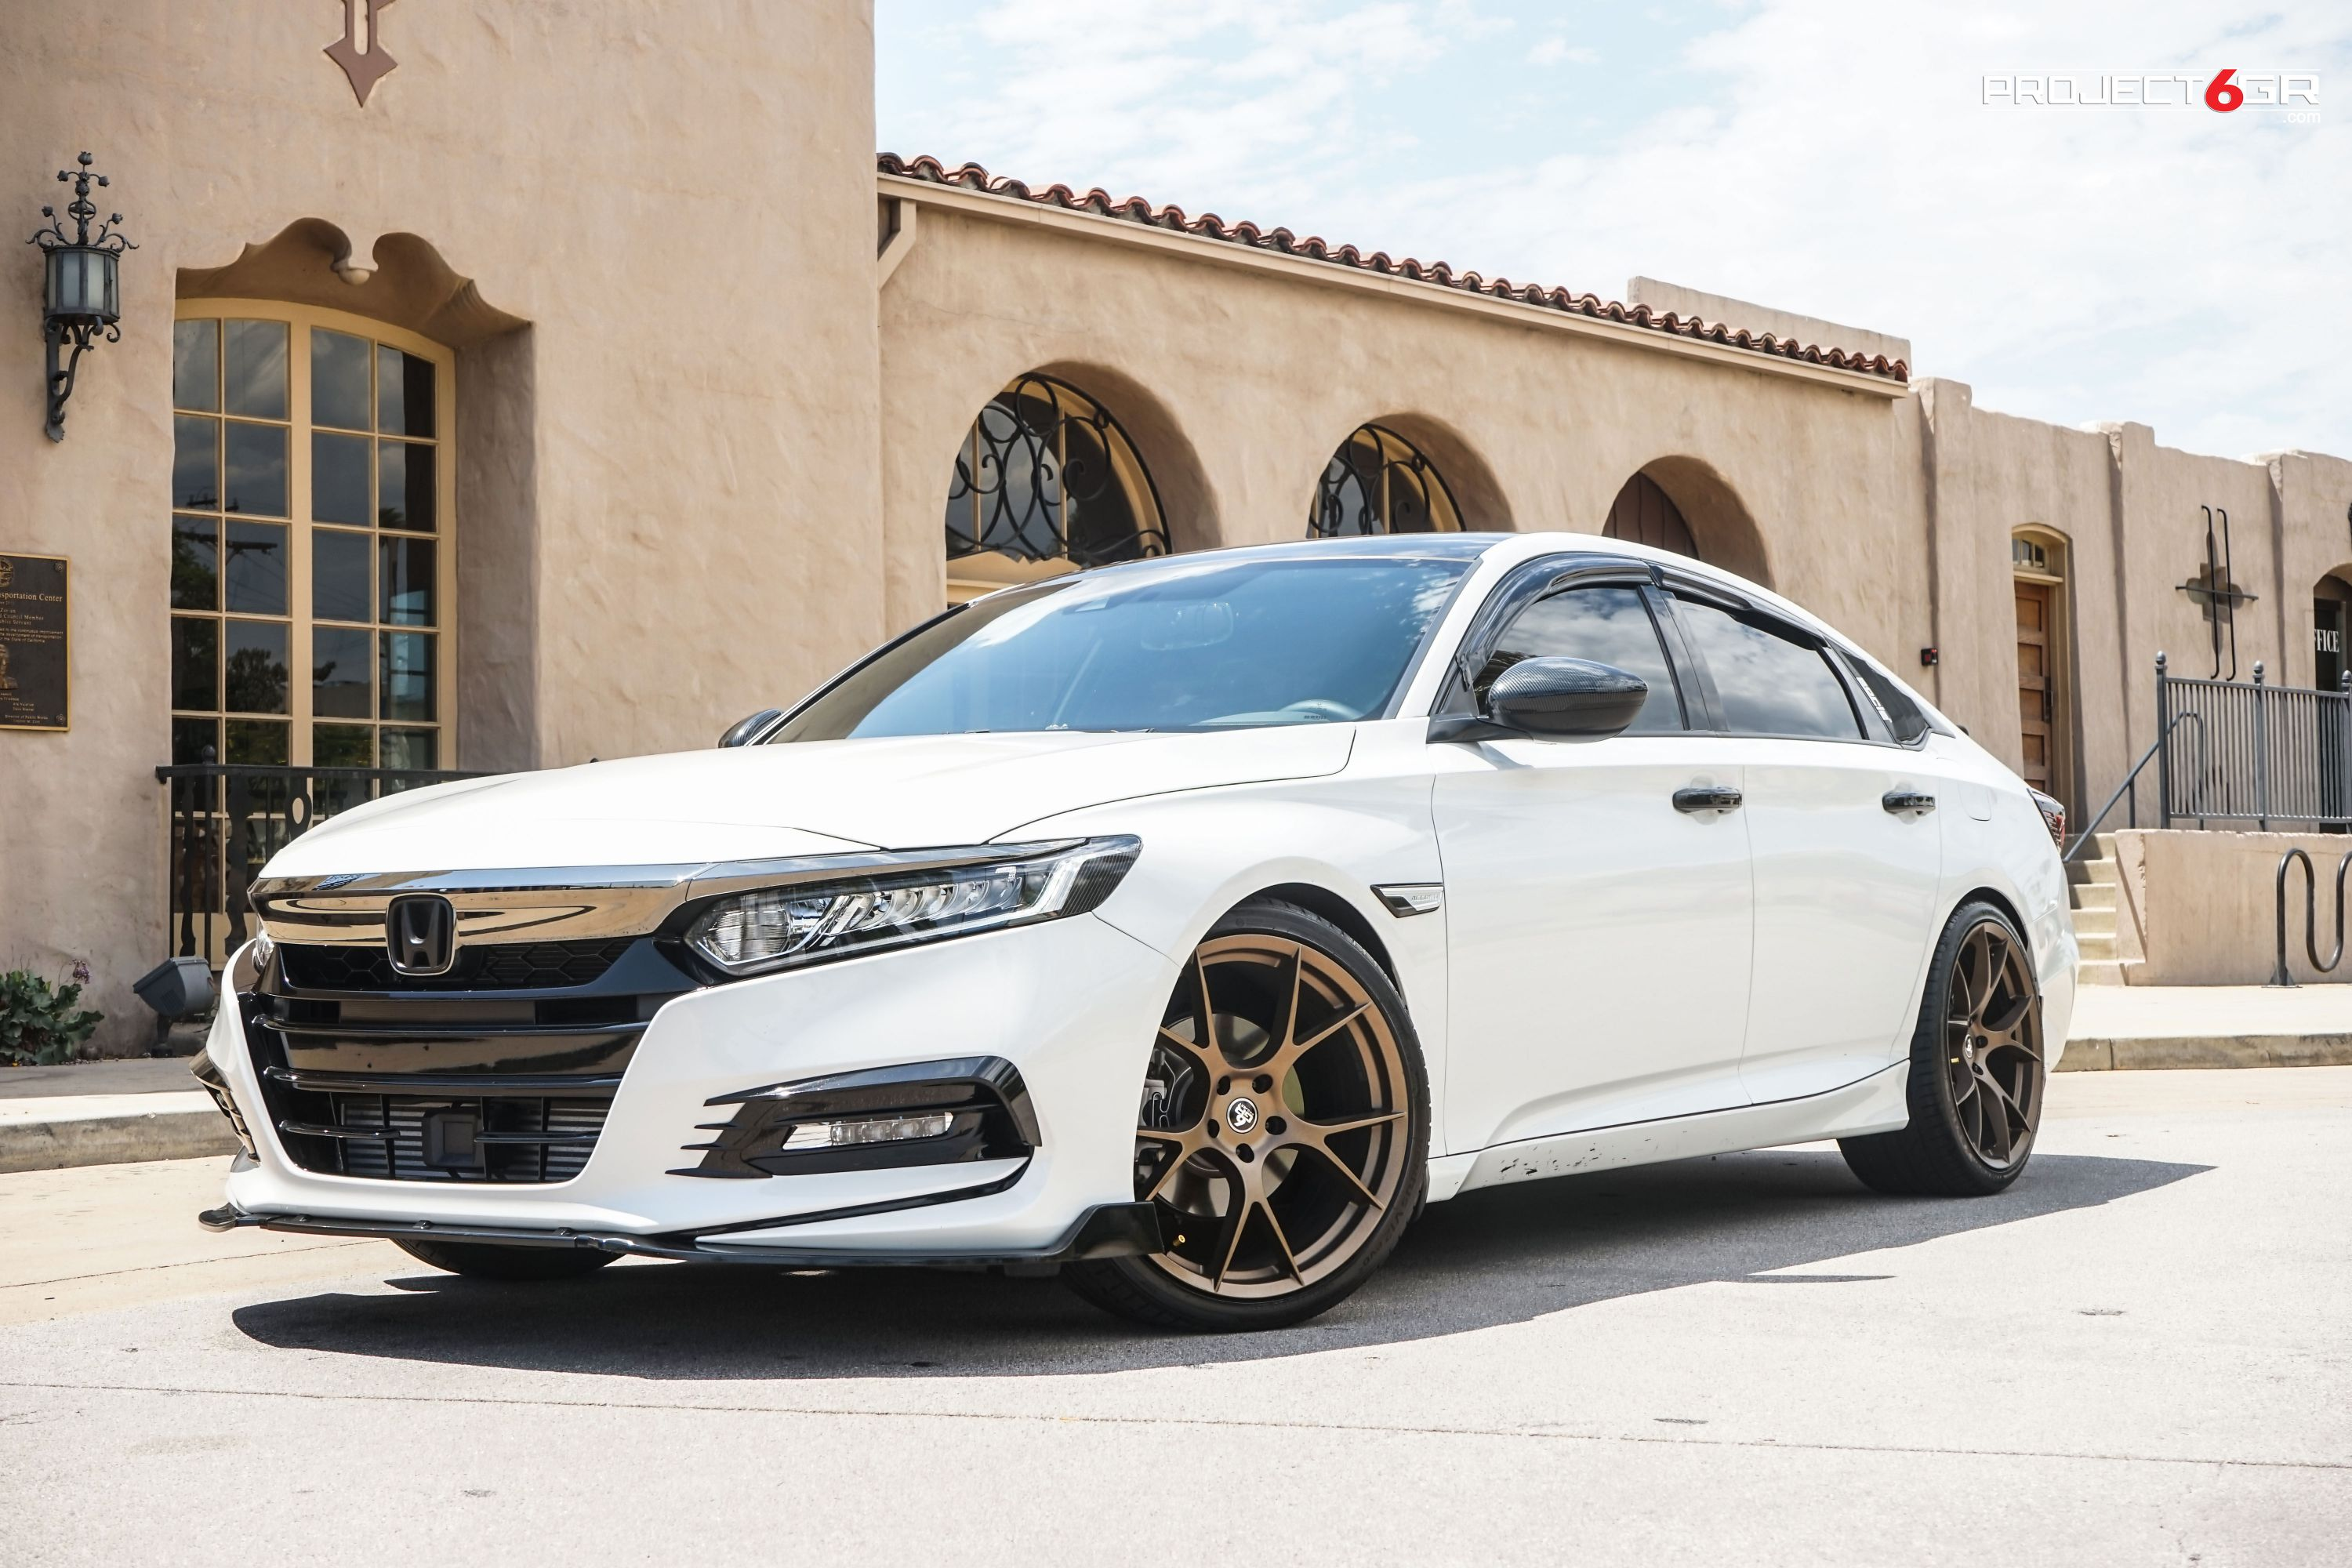 What makes this car so popular for. Project 6gr 10 Ten Wheels For Honda Accord Sport Lx Ex Ex L Touring 1 5t 2 0t